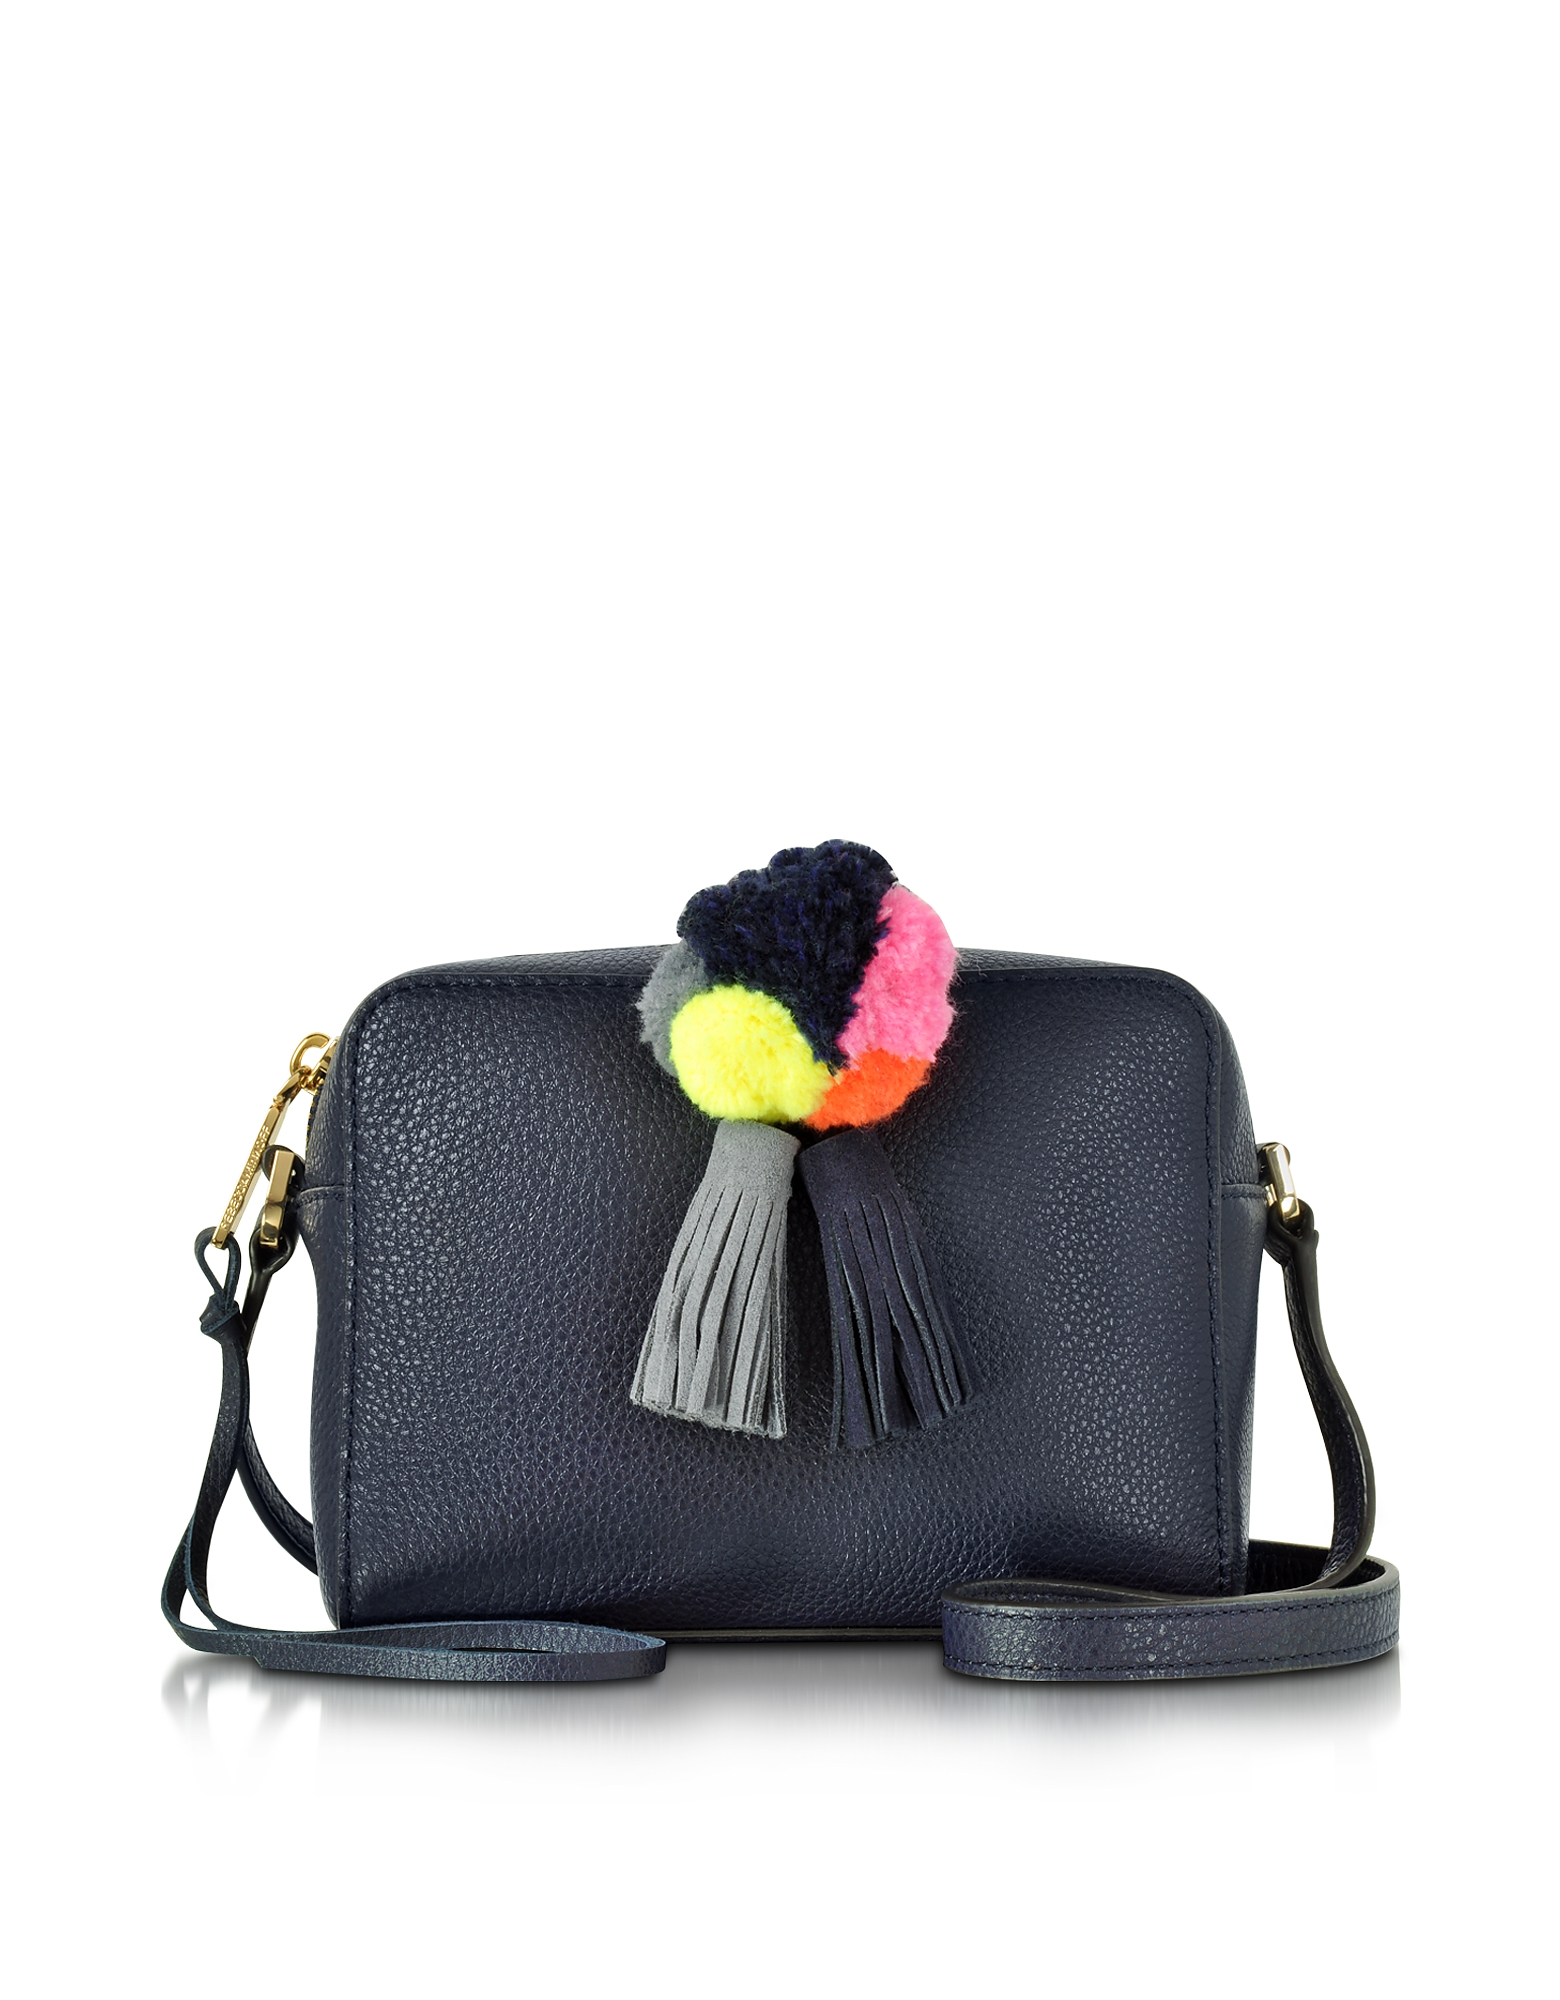 Rebecca Minkoff Pom Pom Moon Leather Mini Sofia Crossbody